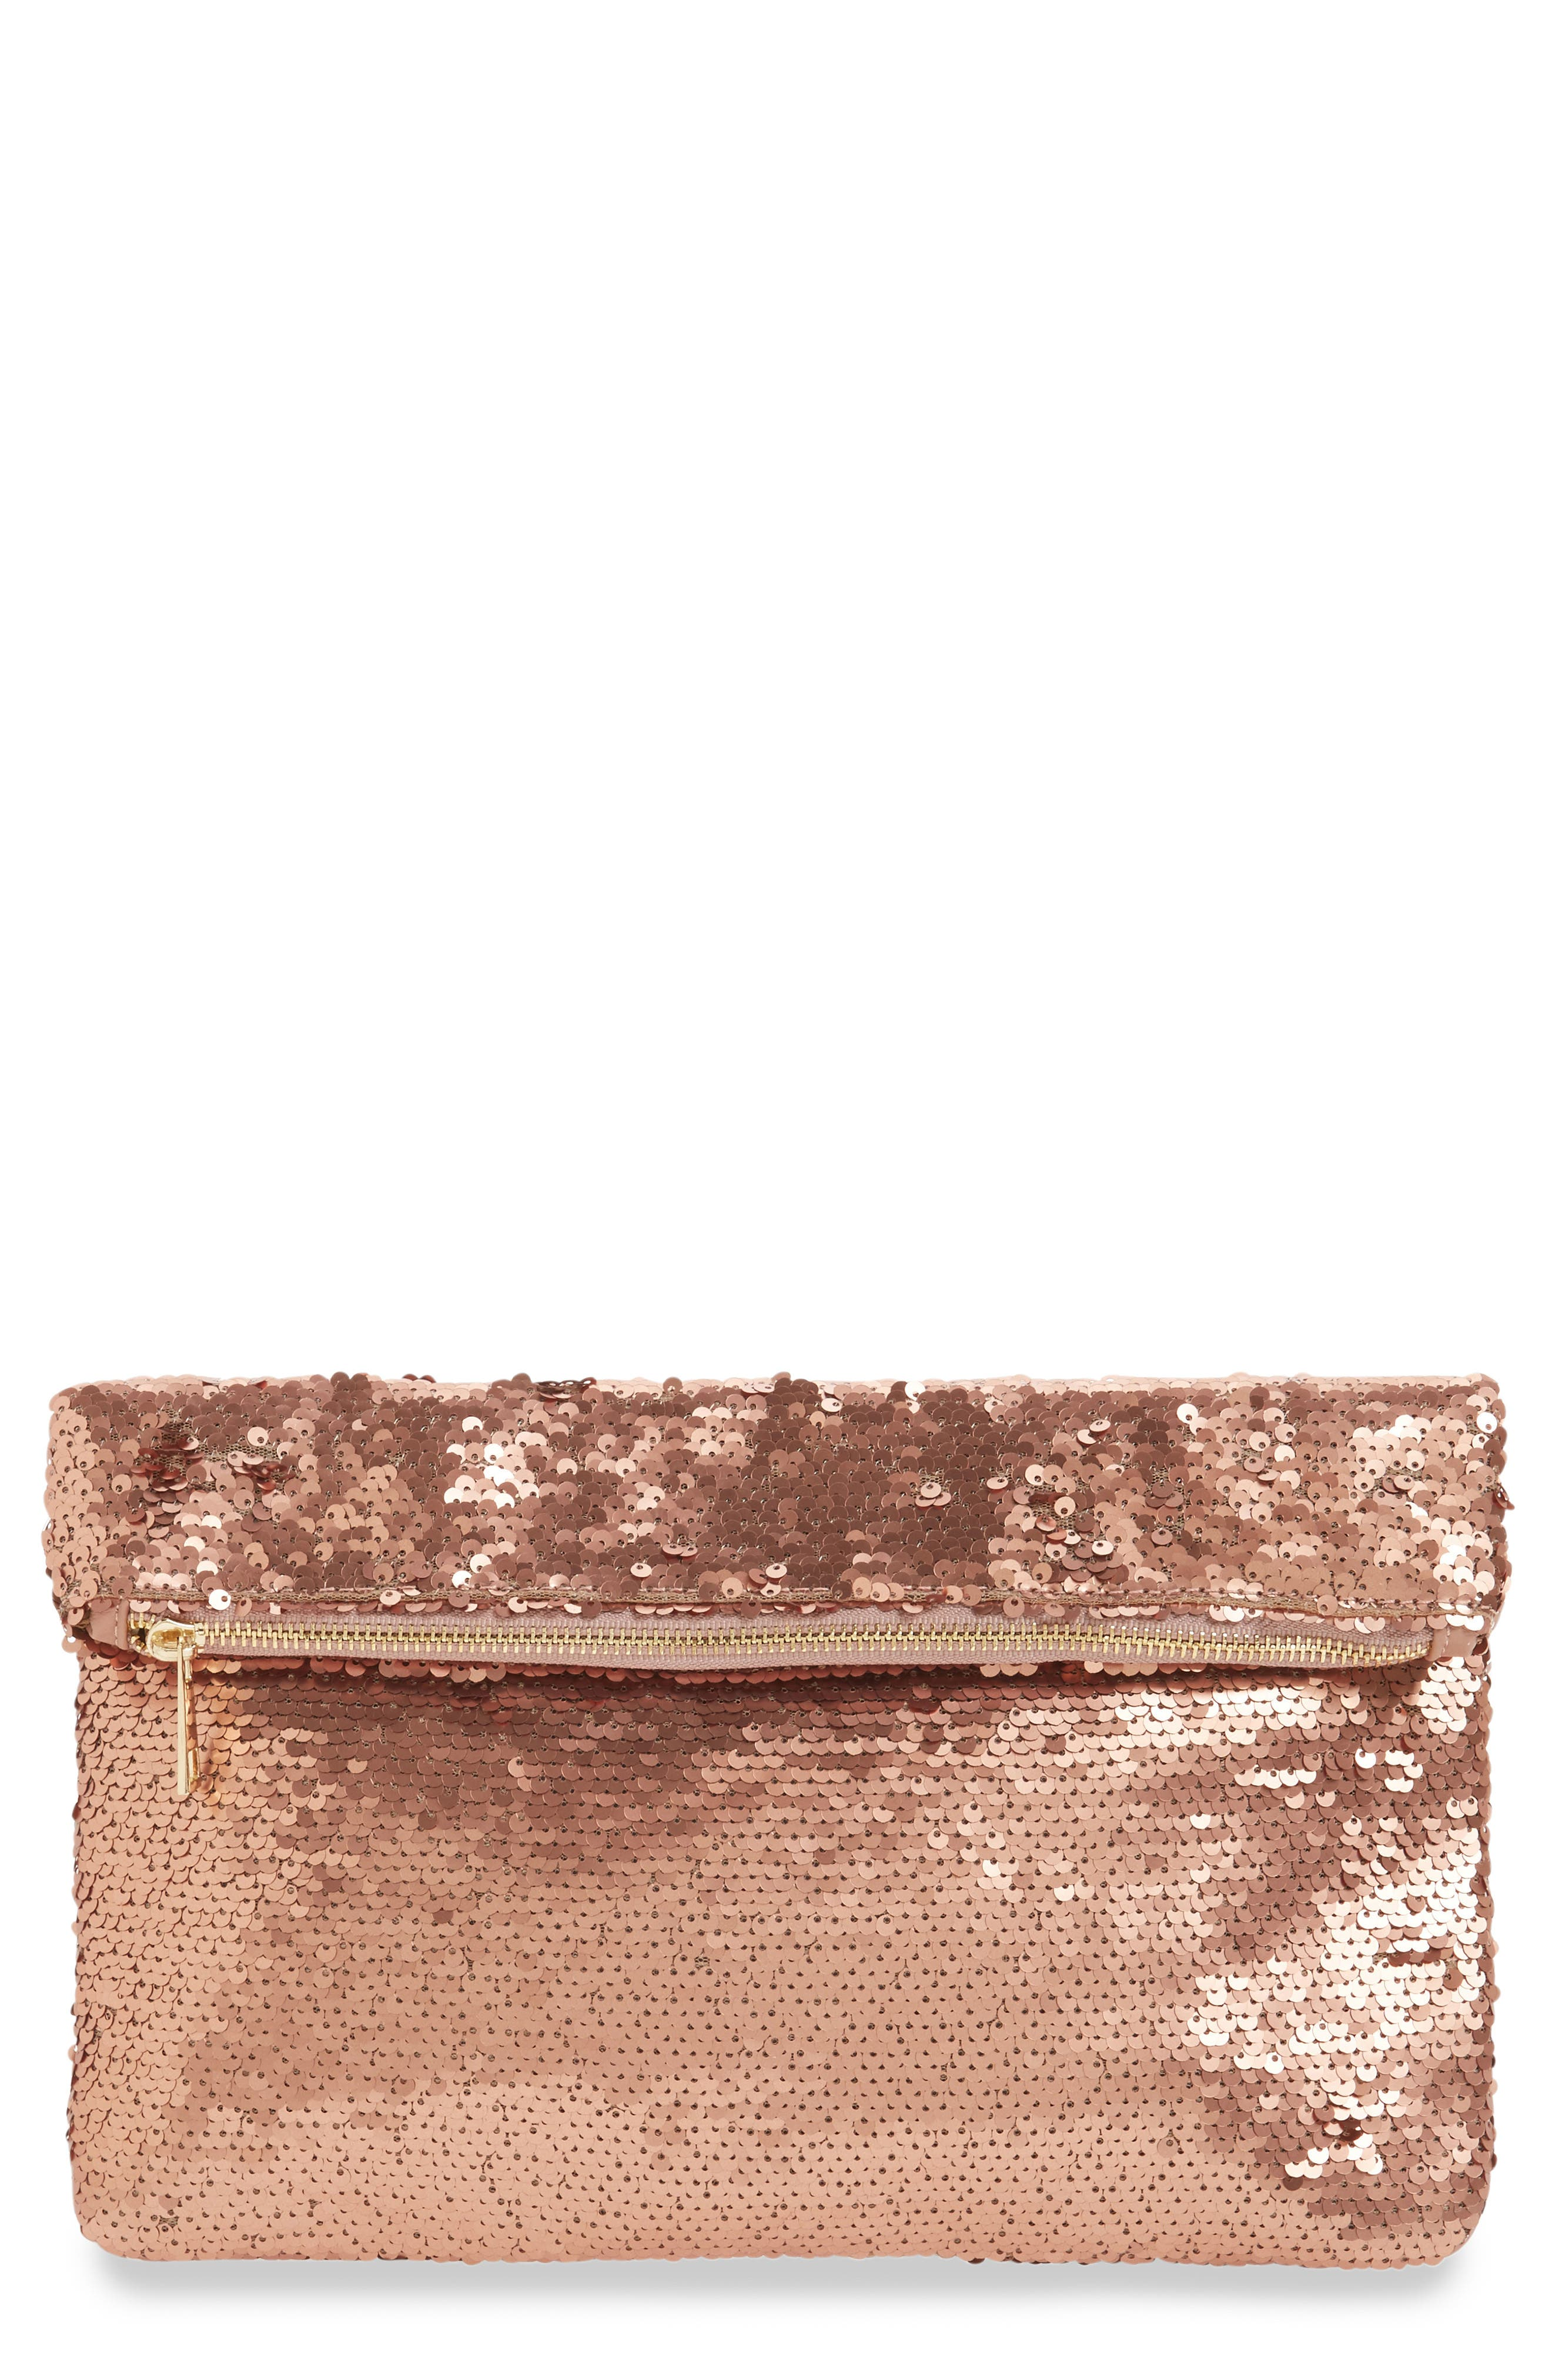 Sequin Foldover Clutch,                             Main thumbnail 1, color,                             200